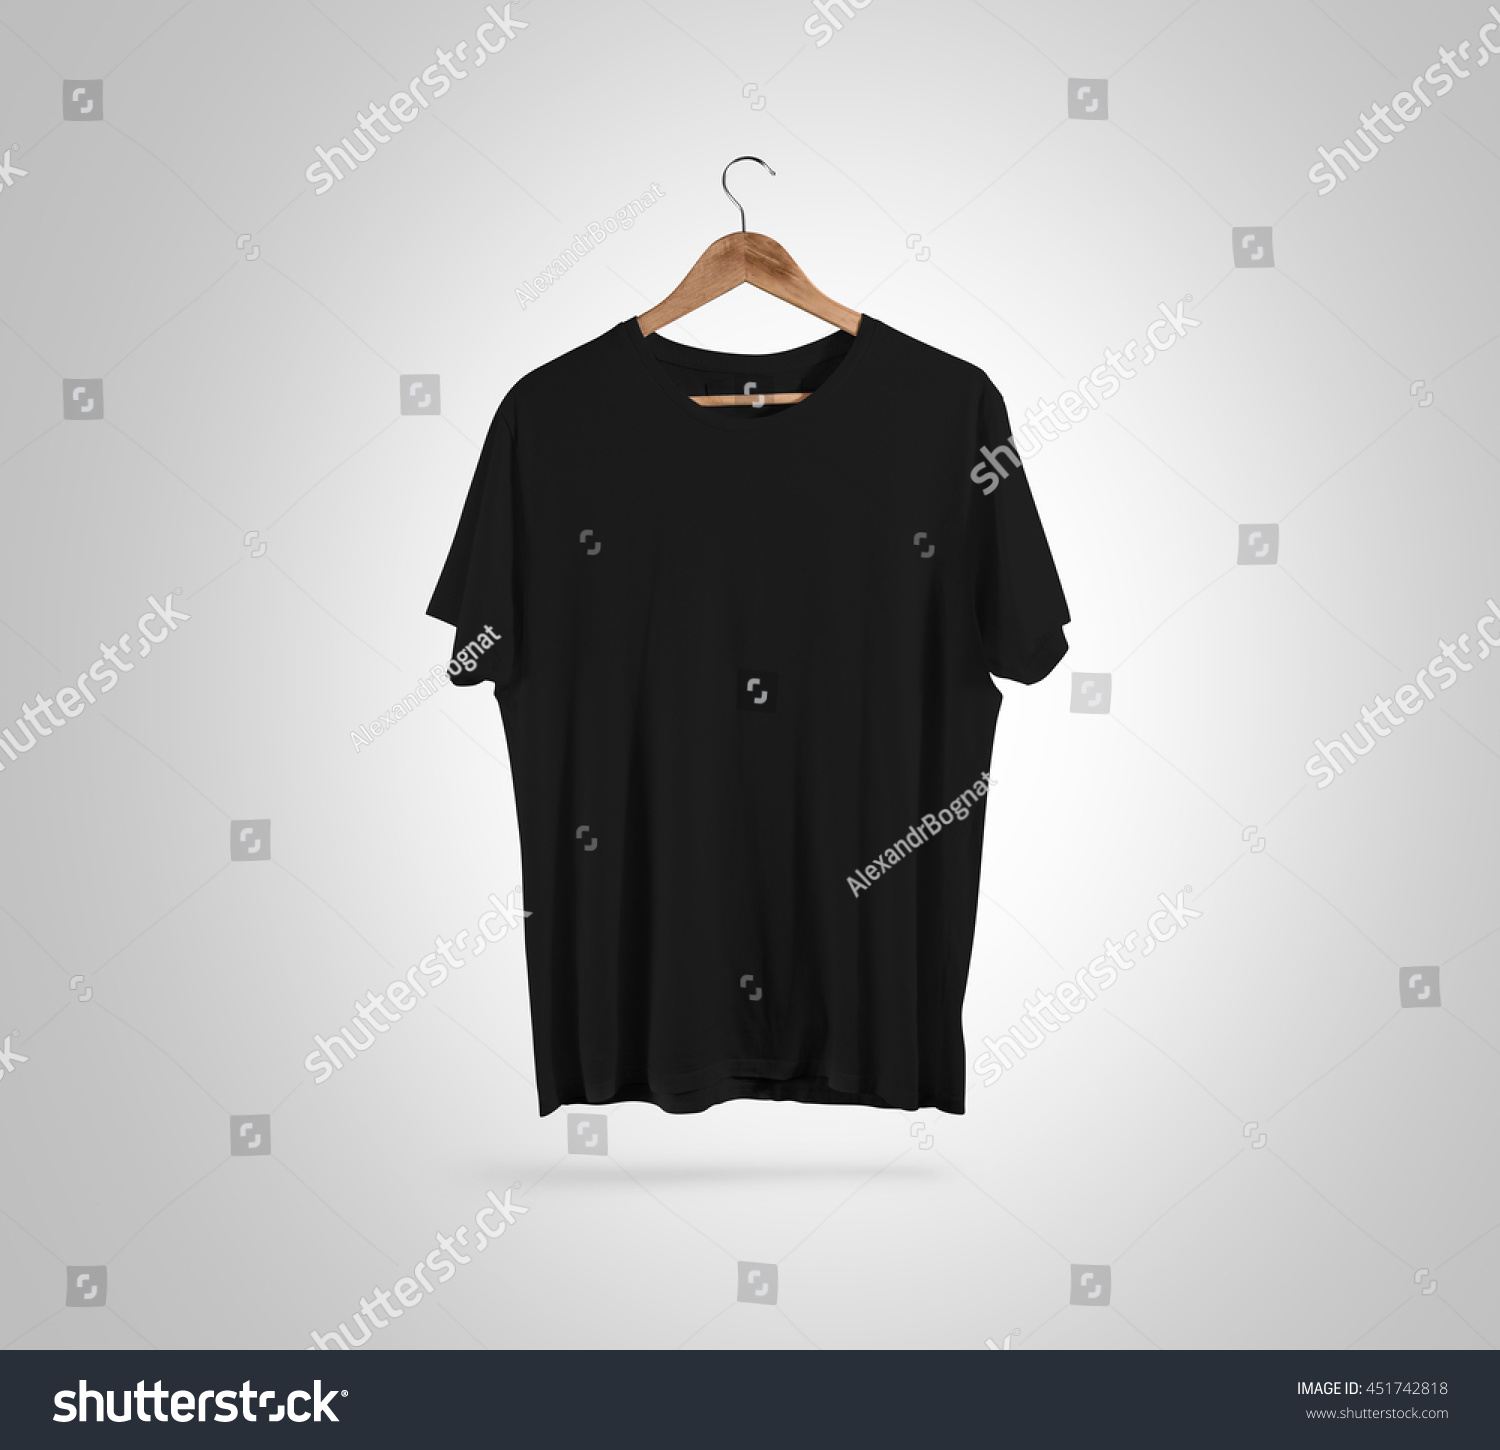 Black t shirt blank template - Blank Black T Shirt Front Side View On Hanger Design Mockup Clipping Path